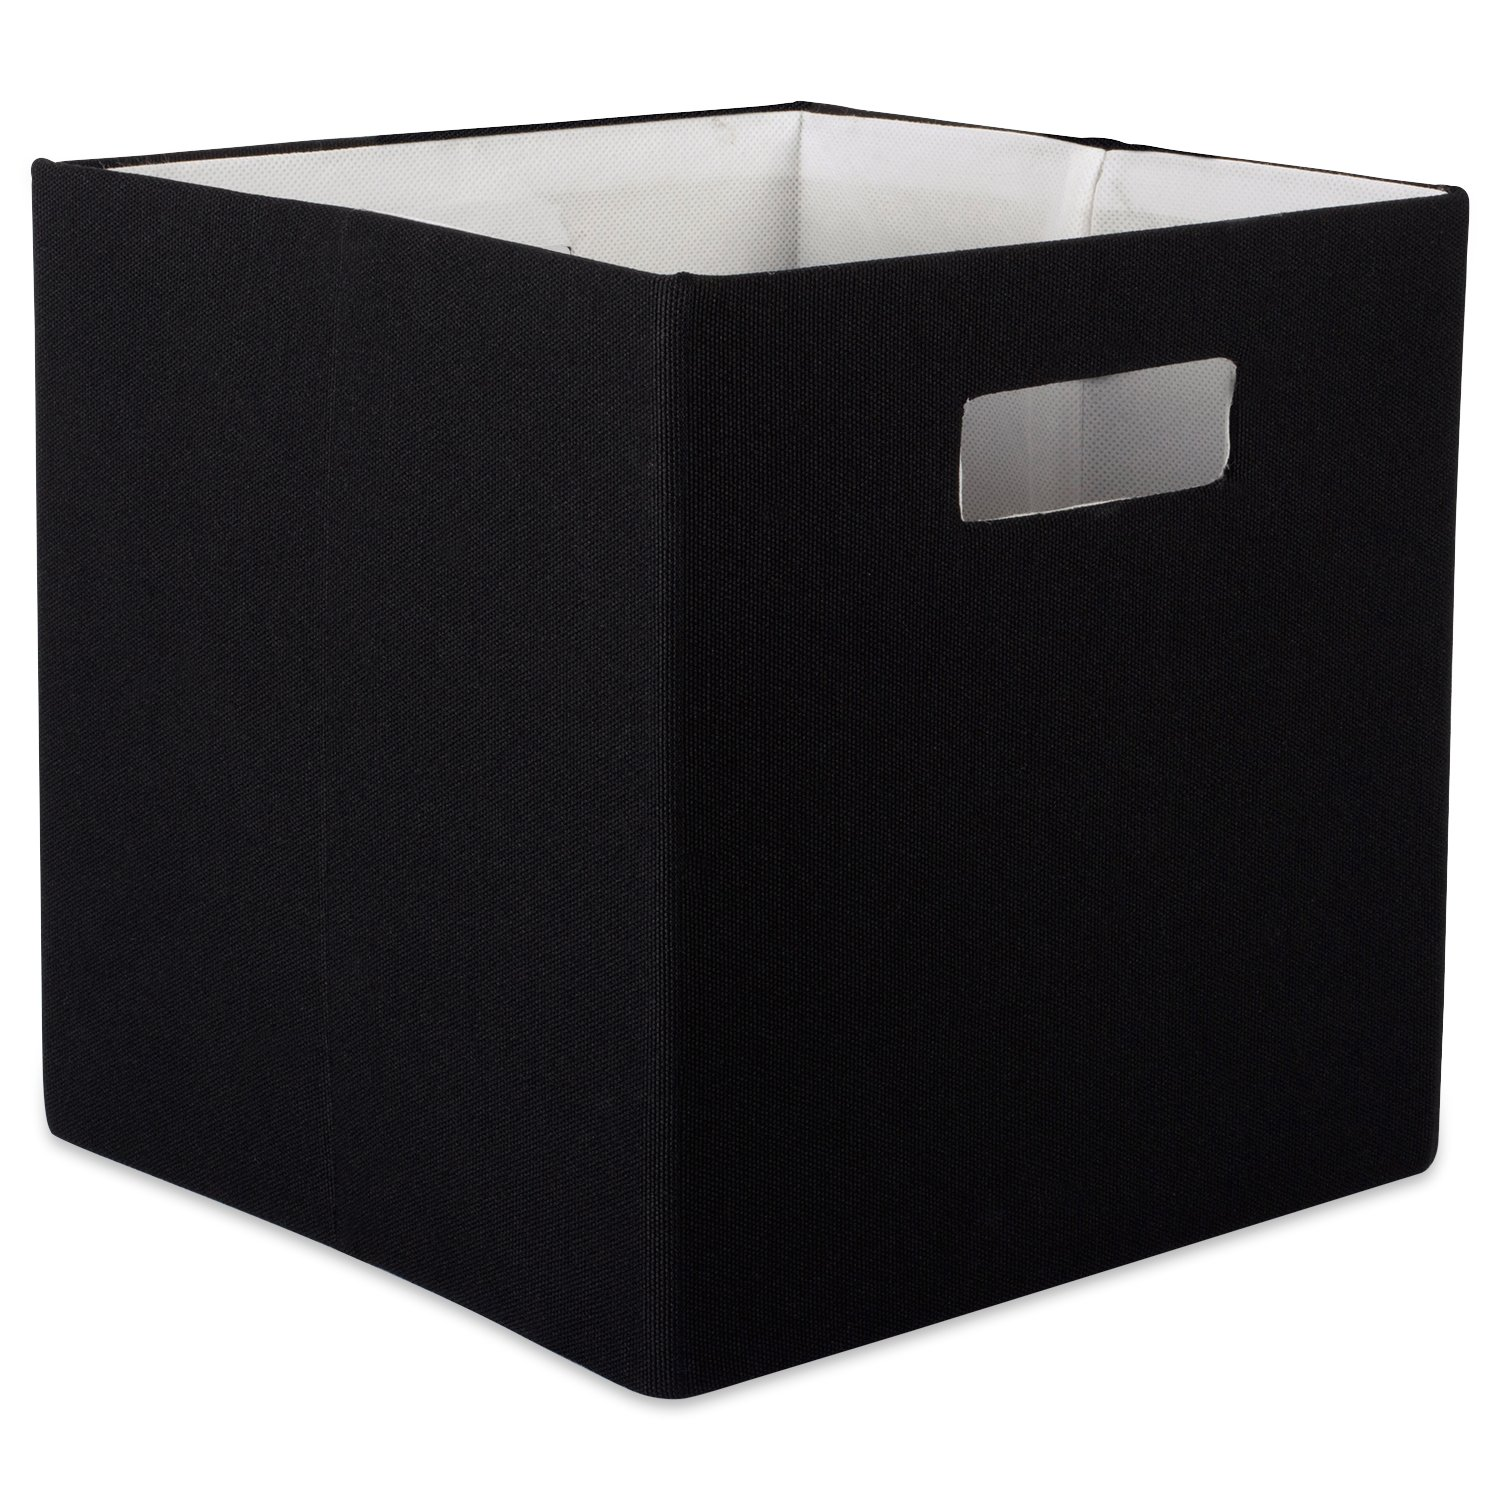 """DII Hard Sided Collapsible Fabric Storage Container for Nursery, Offices, & Home Organization, (13x13x13"""") - Solid Black"""